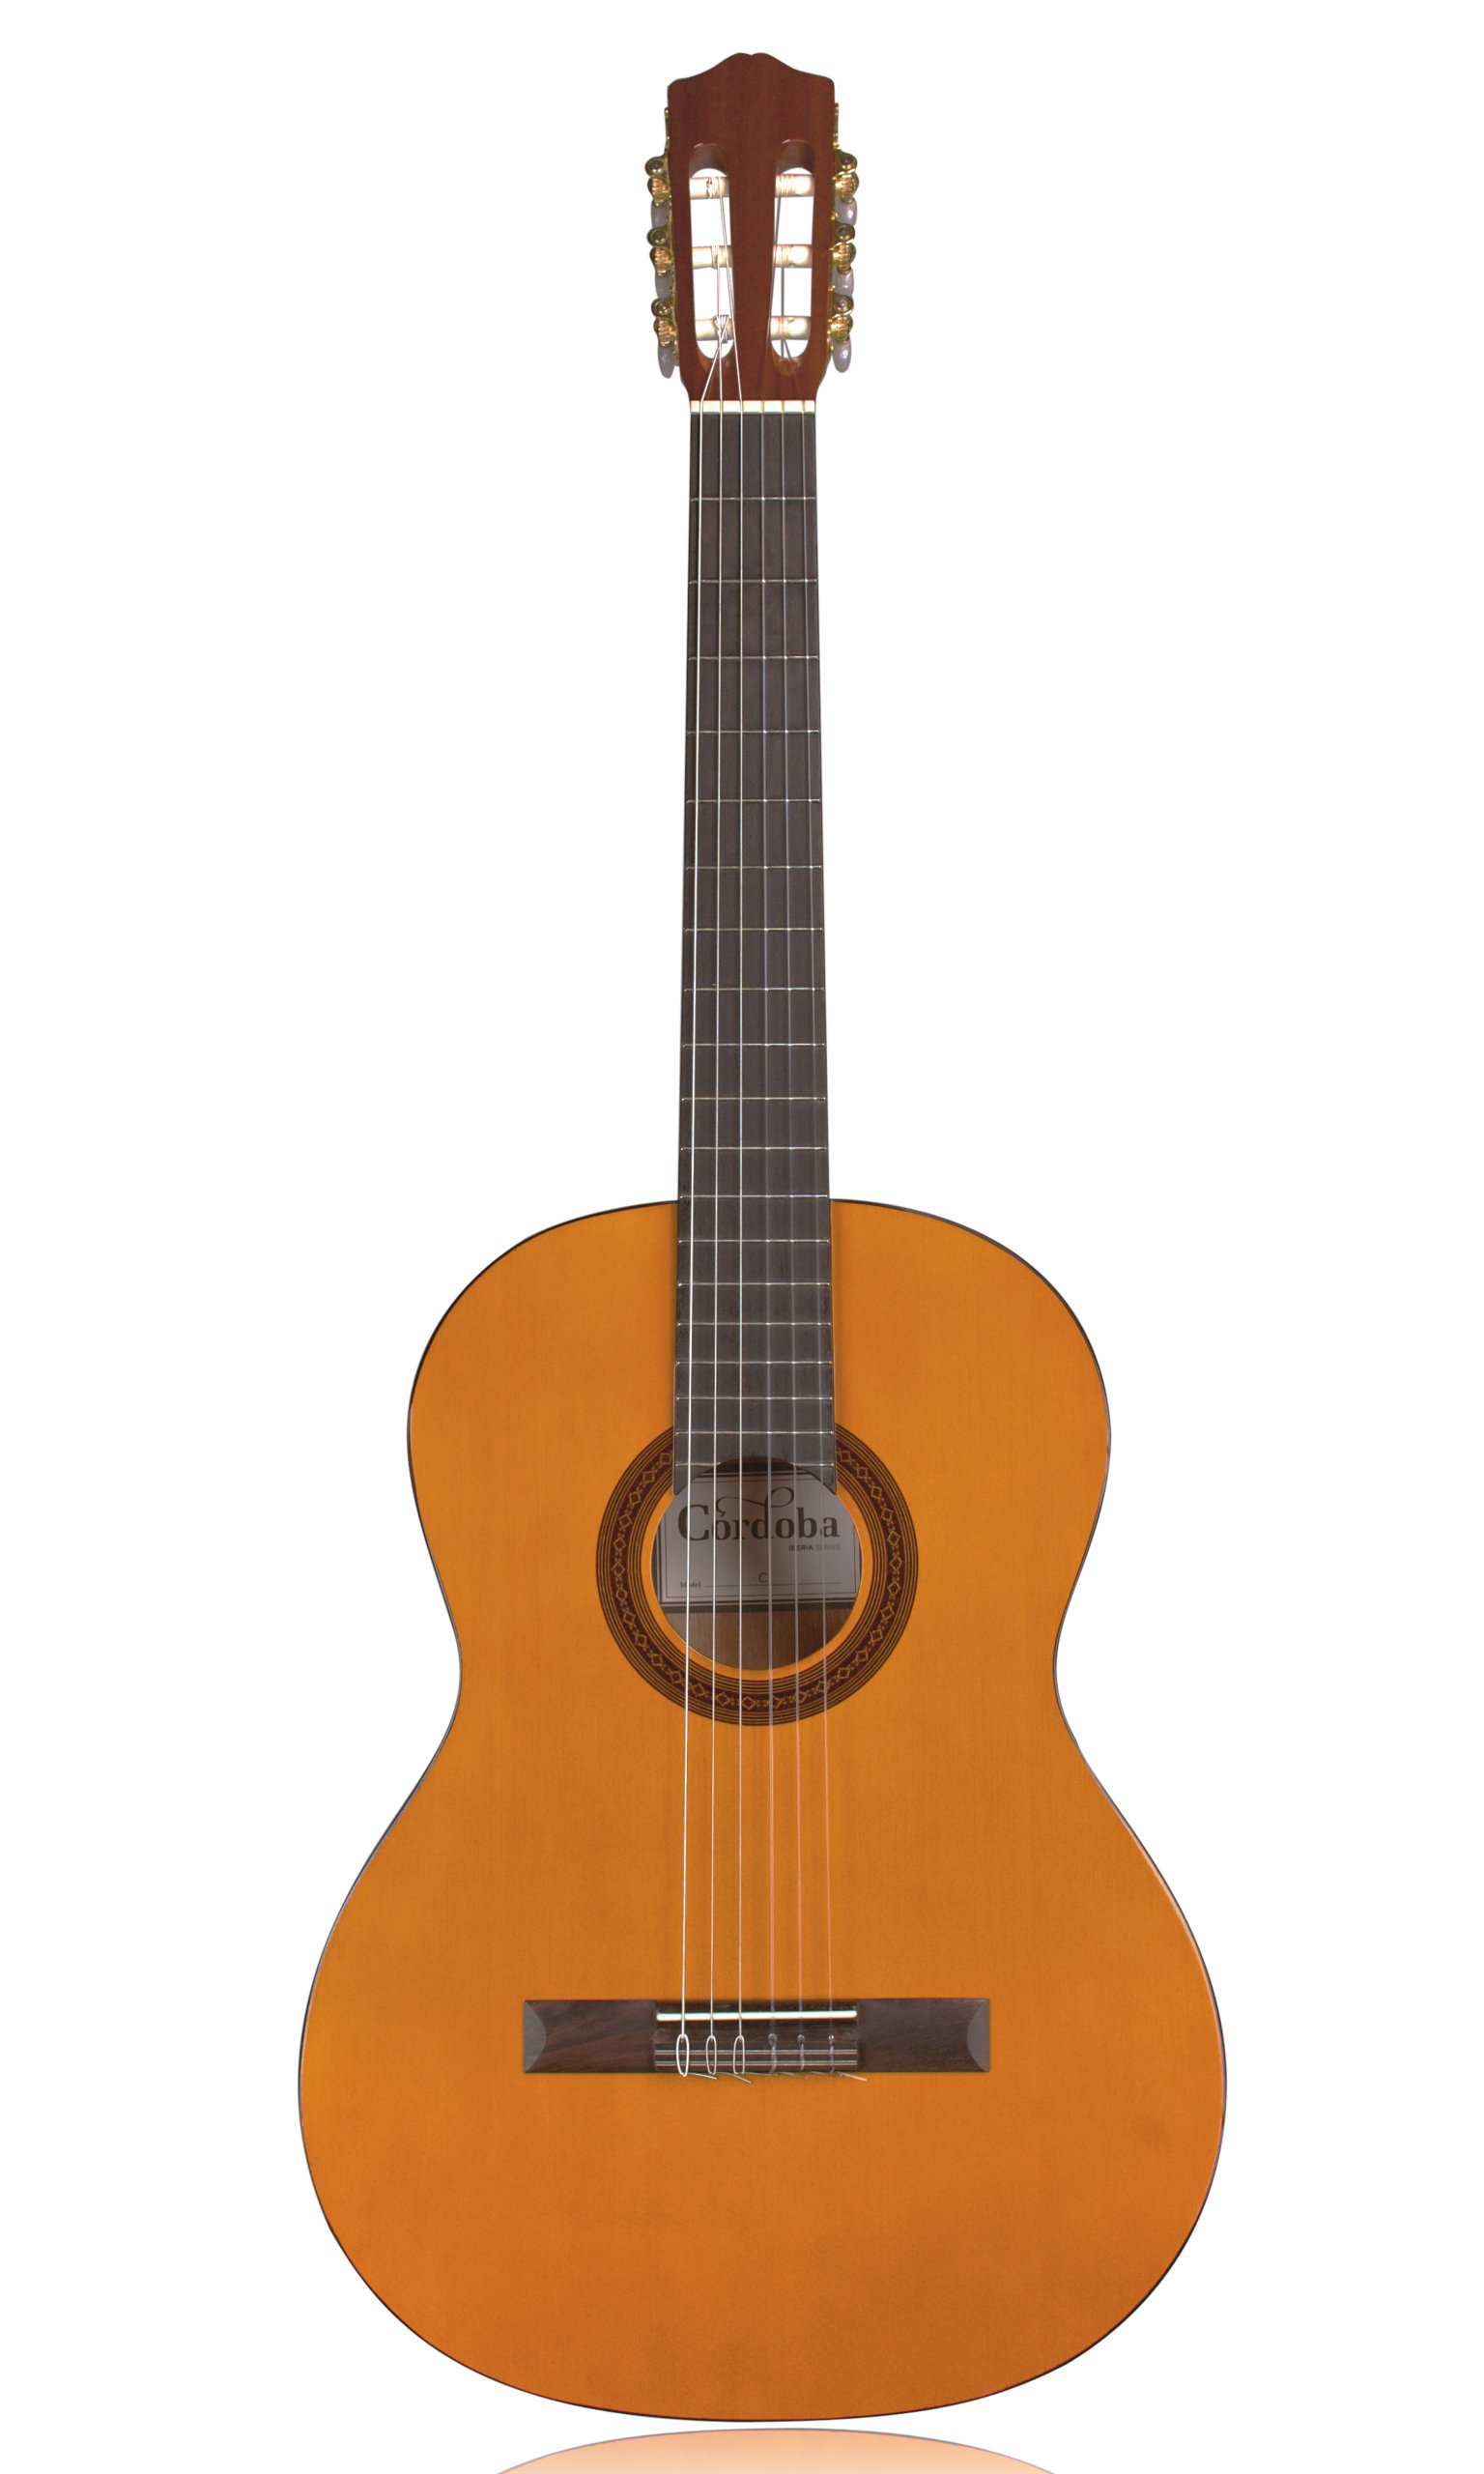 Protégé by Cordoba C1 Acoustic Nylon String Classical Guitar